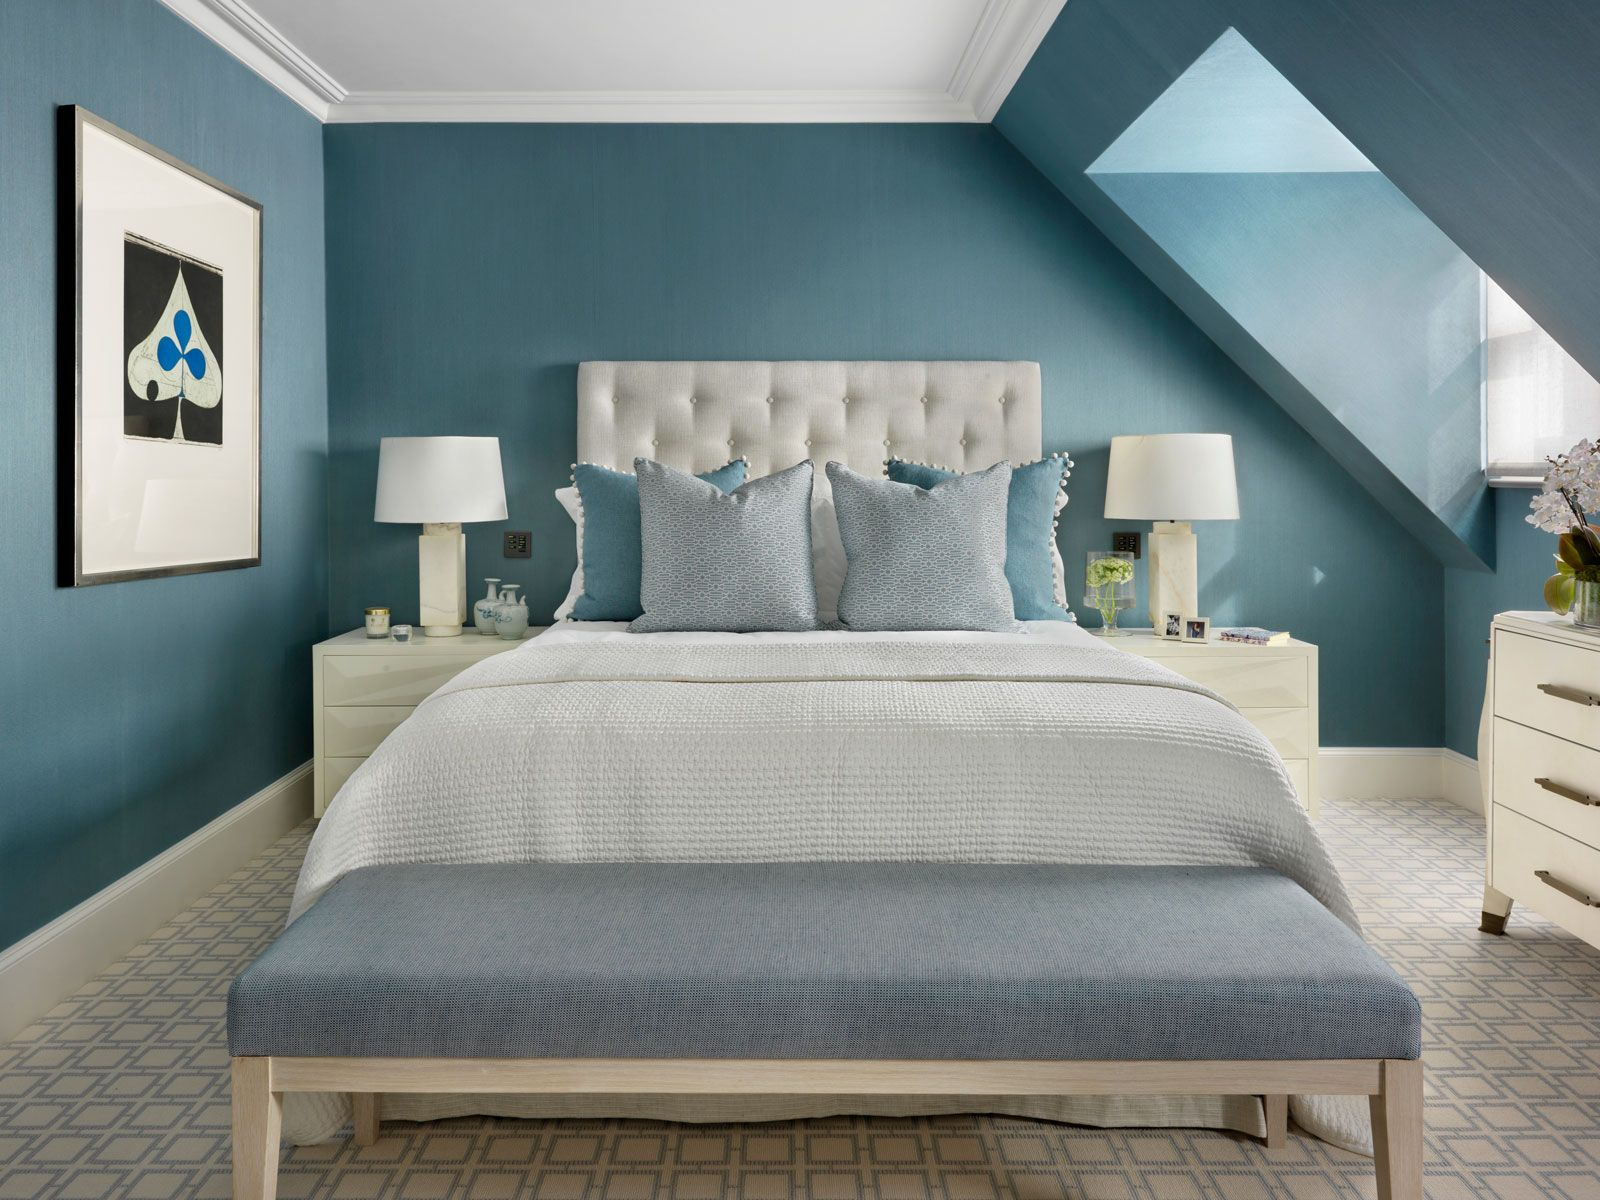 Walls With Subtle Texture Add A Cosy Feel To A Bedroom. Geometric Patterned  Carpet Adds